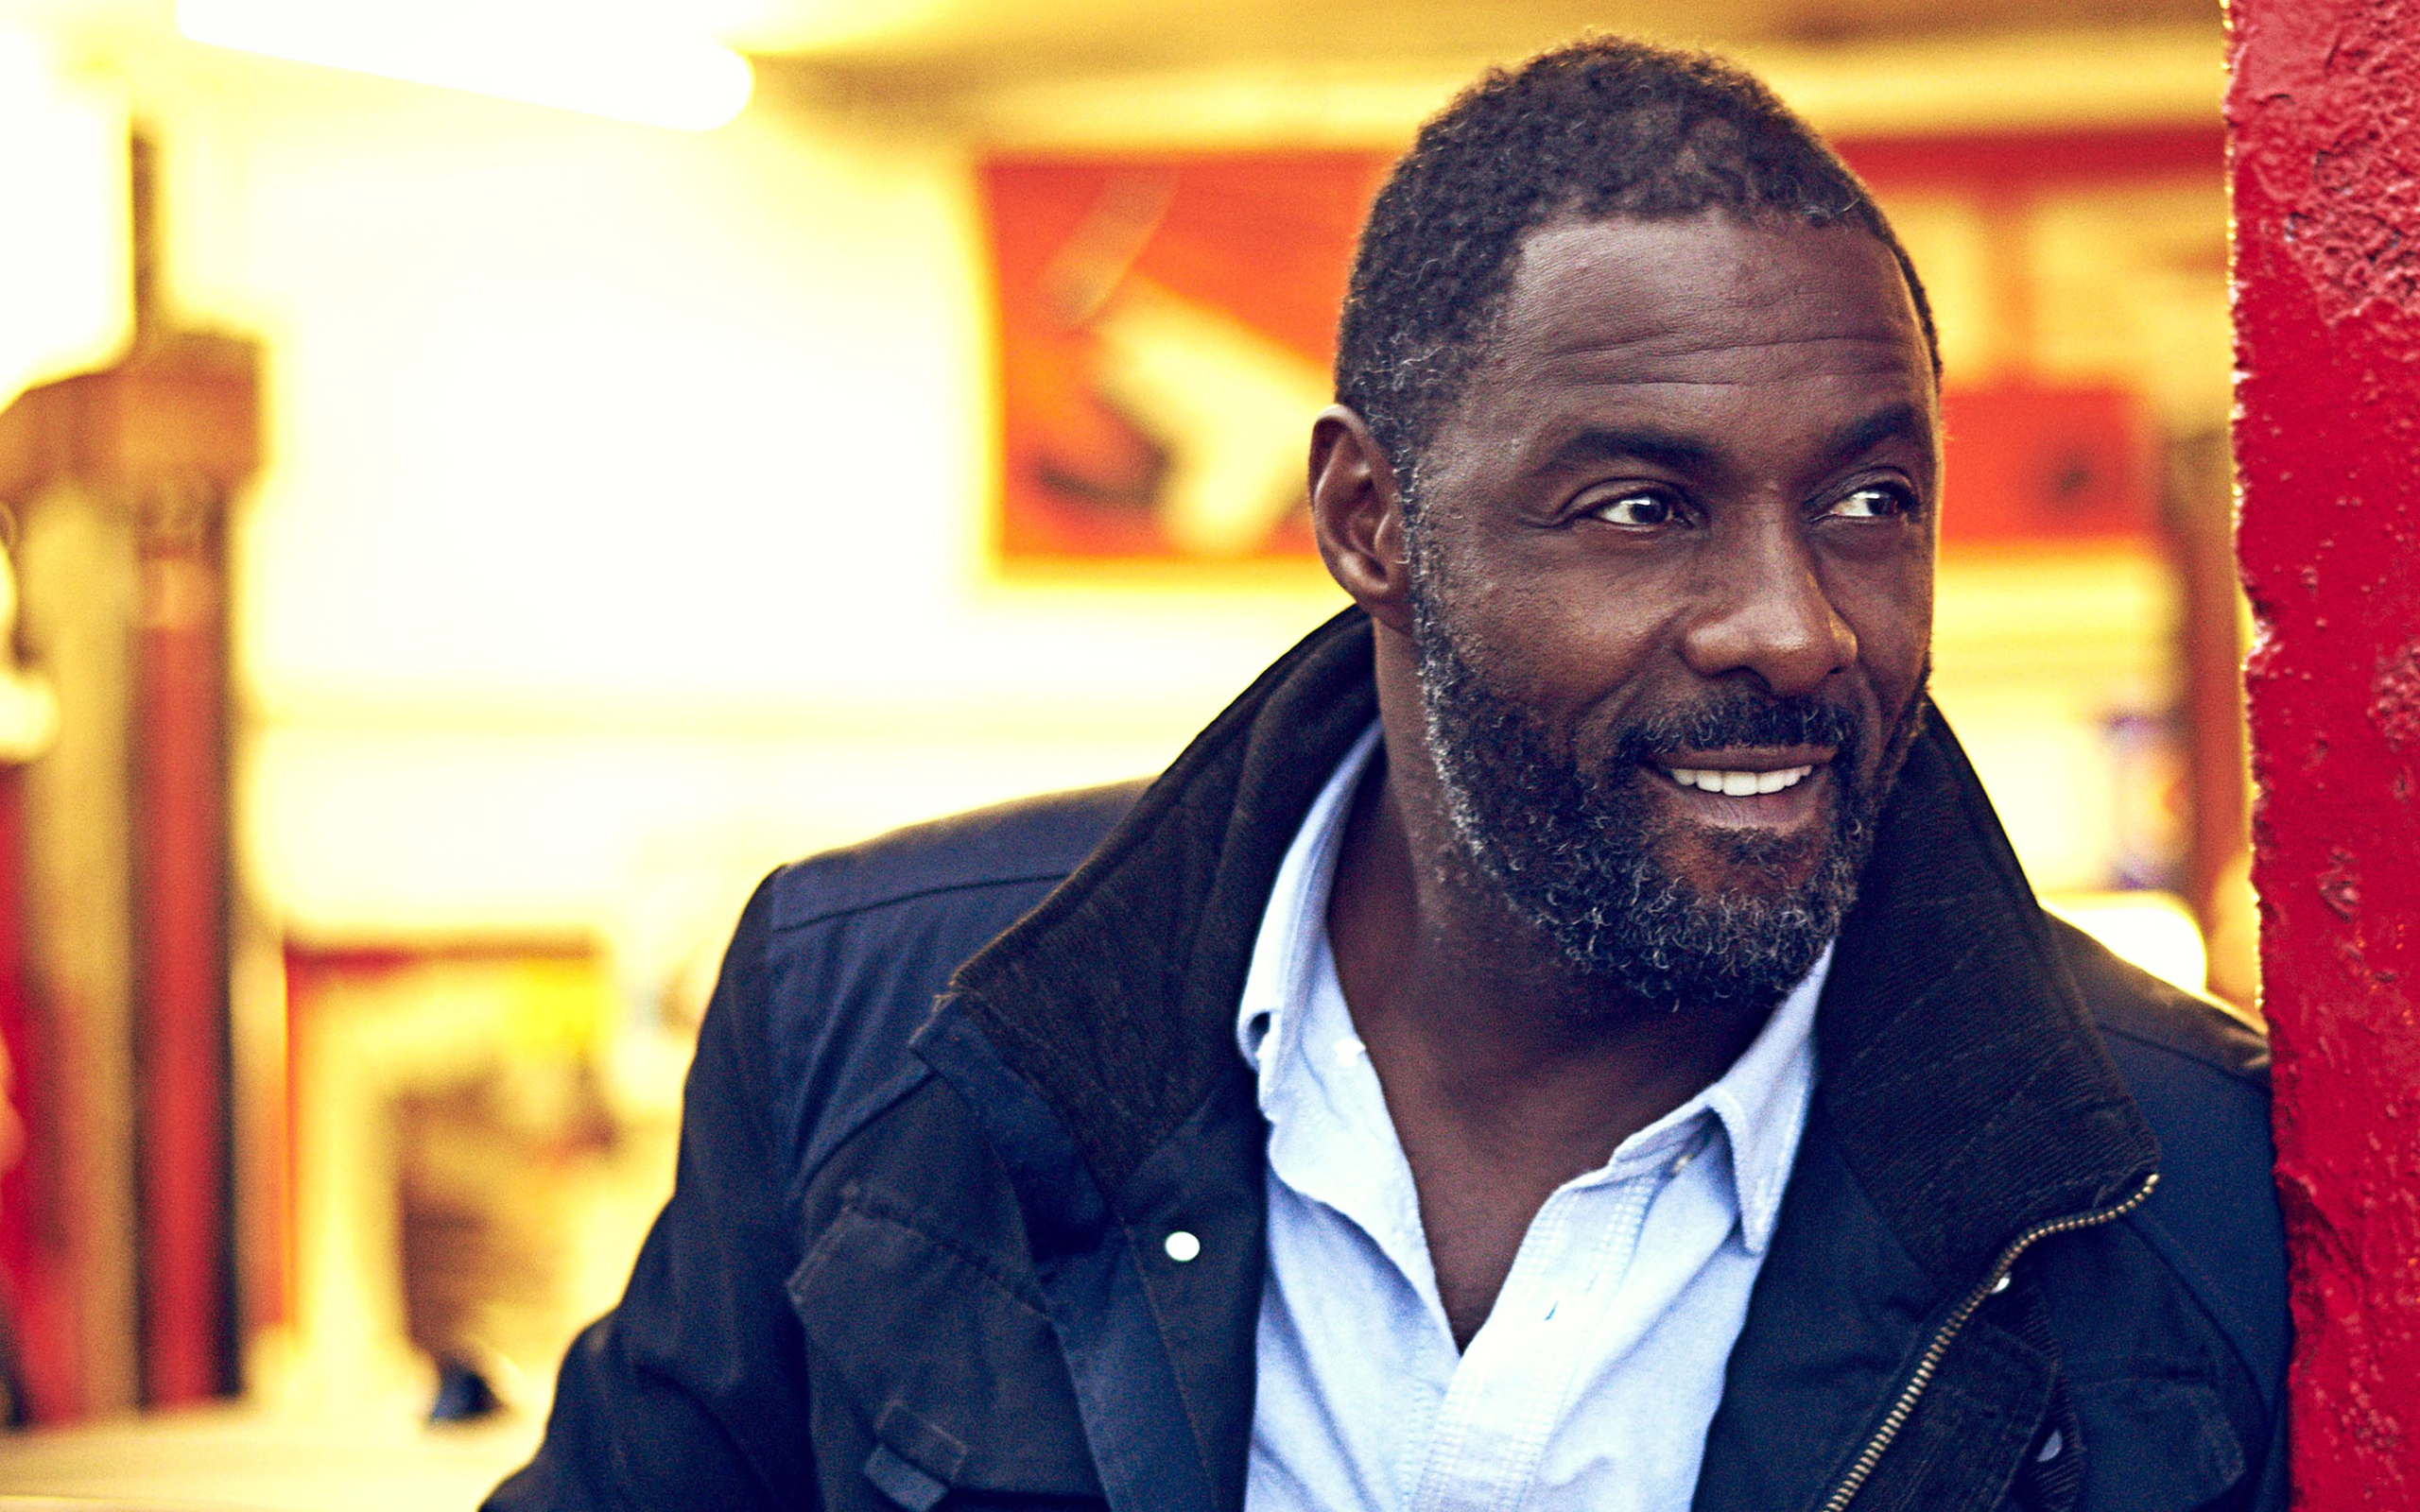 Idris Elba HD Wallpaper Background Image 2560x1600 ID495813 2560x1600